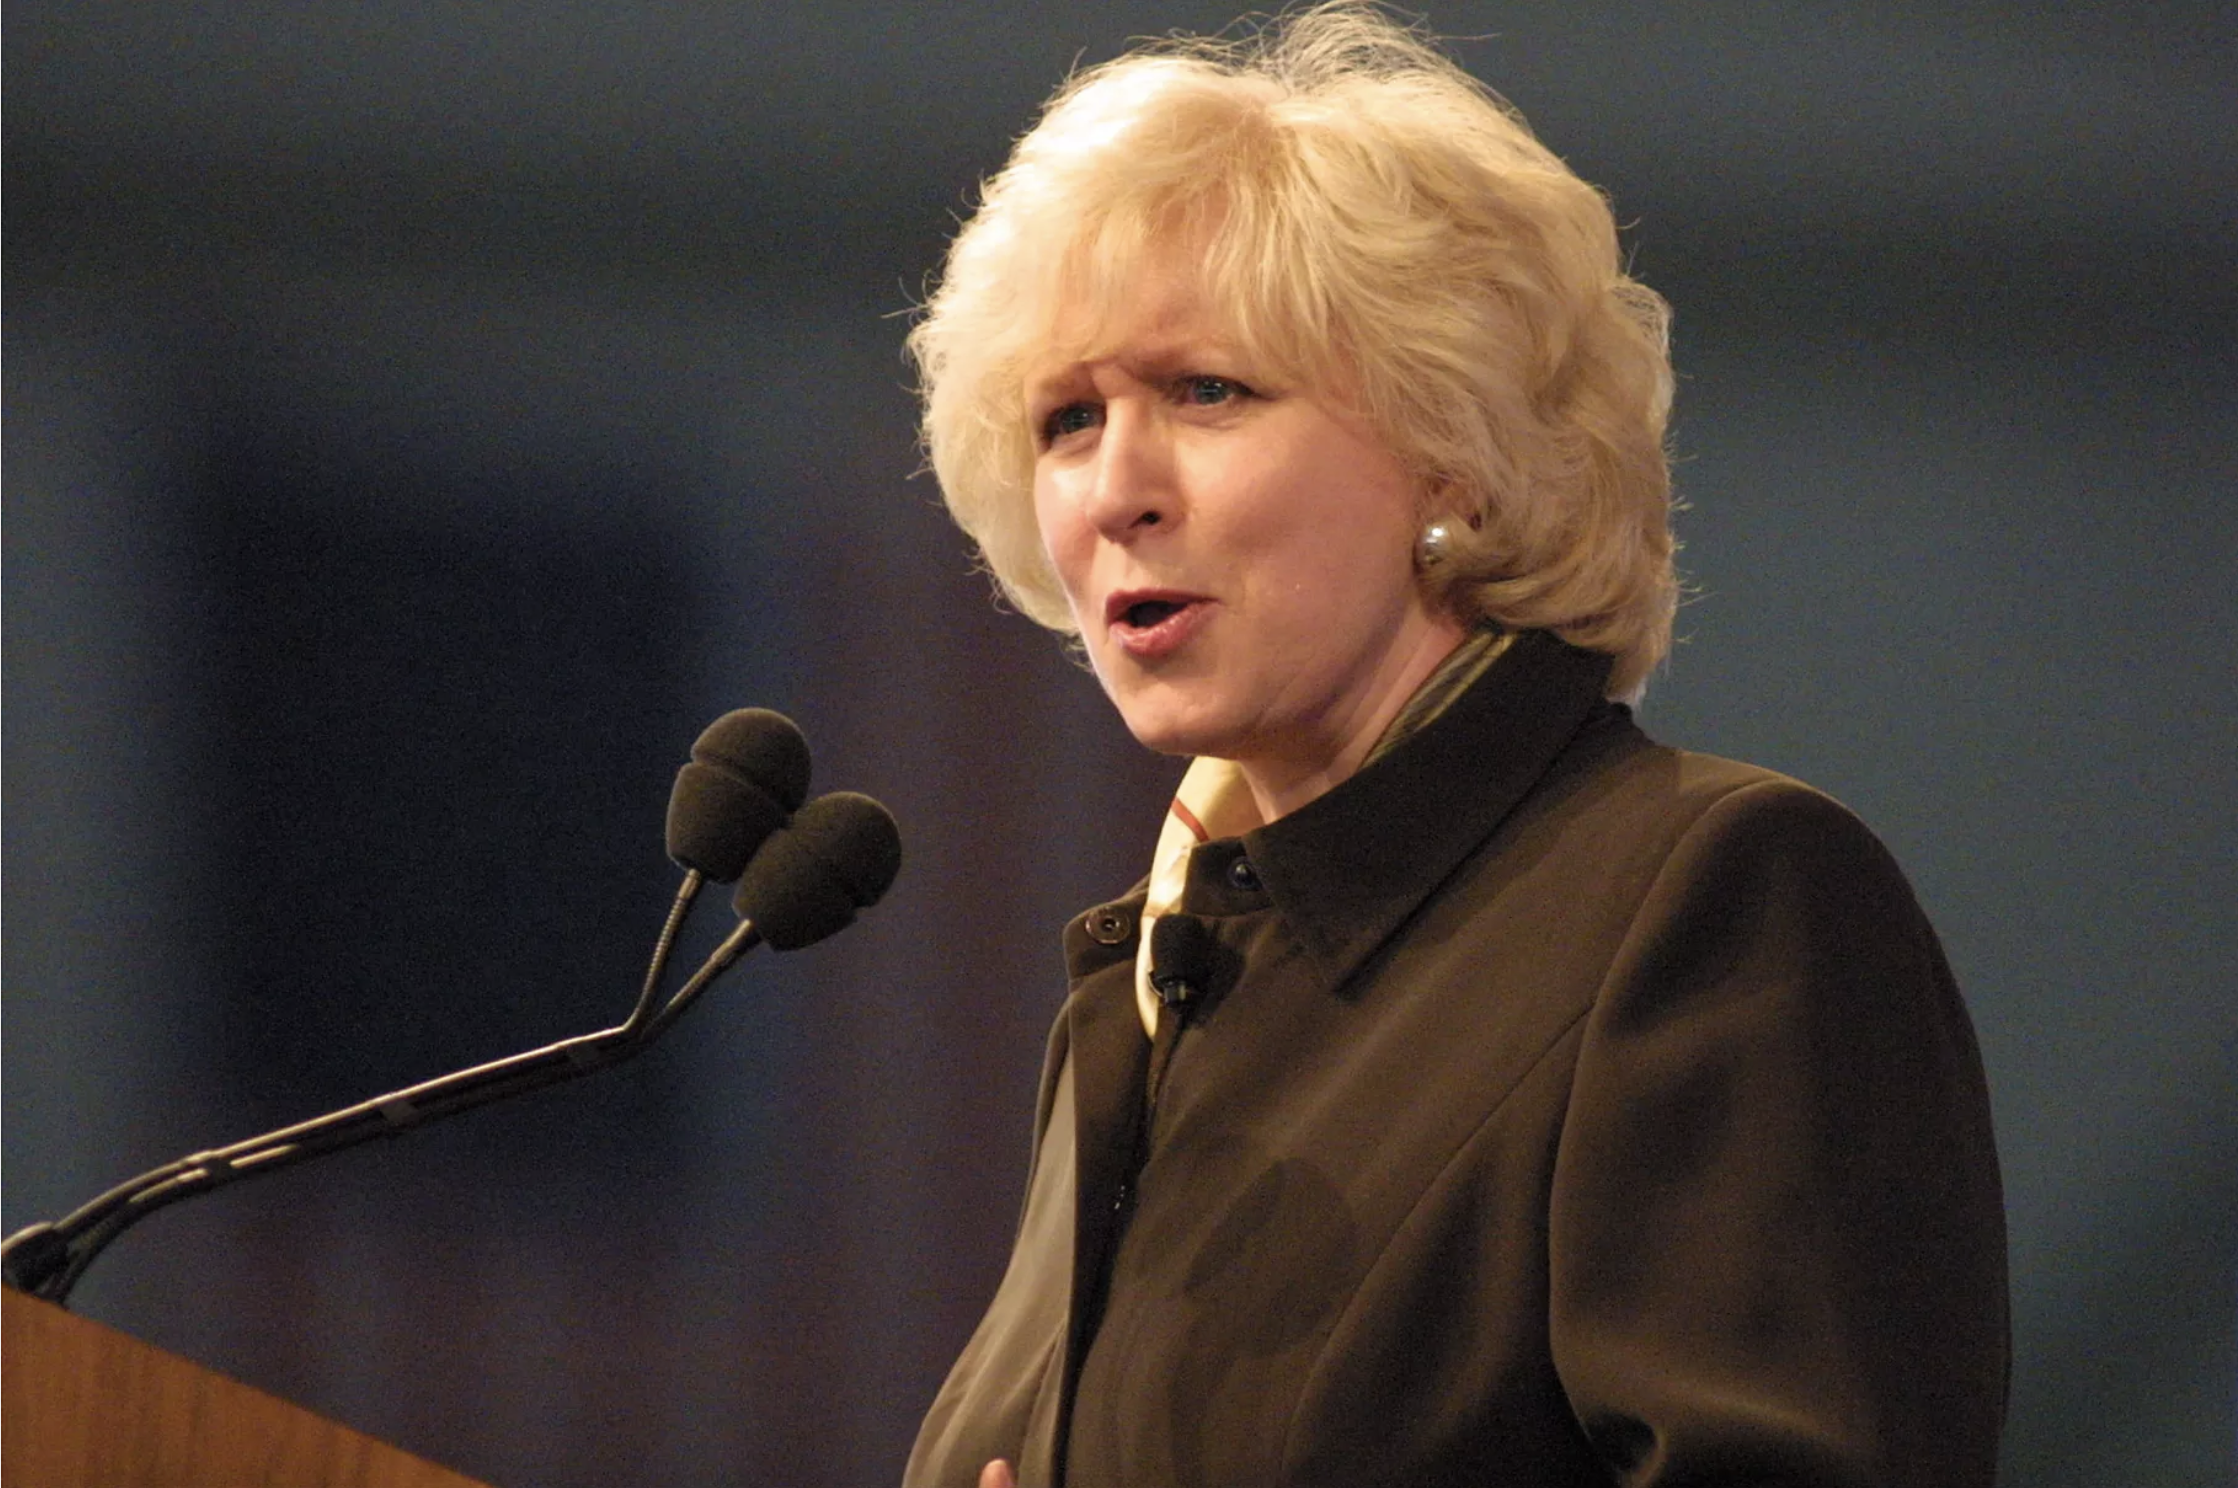 Kim Campbell, Former Prime Minister of Canada